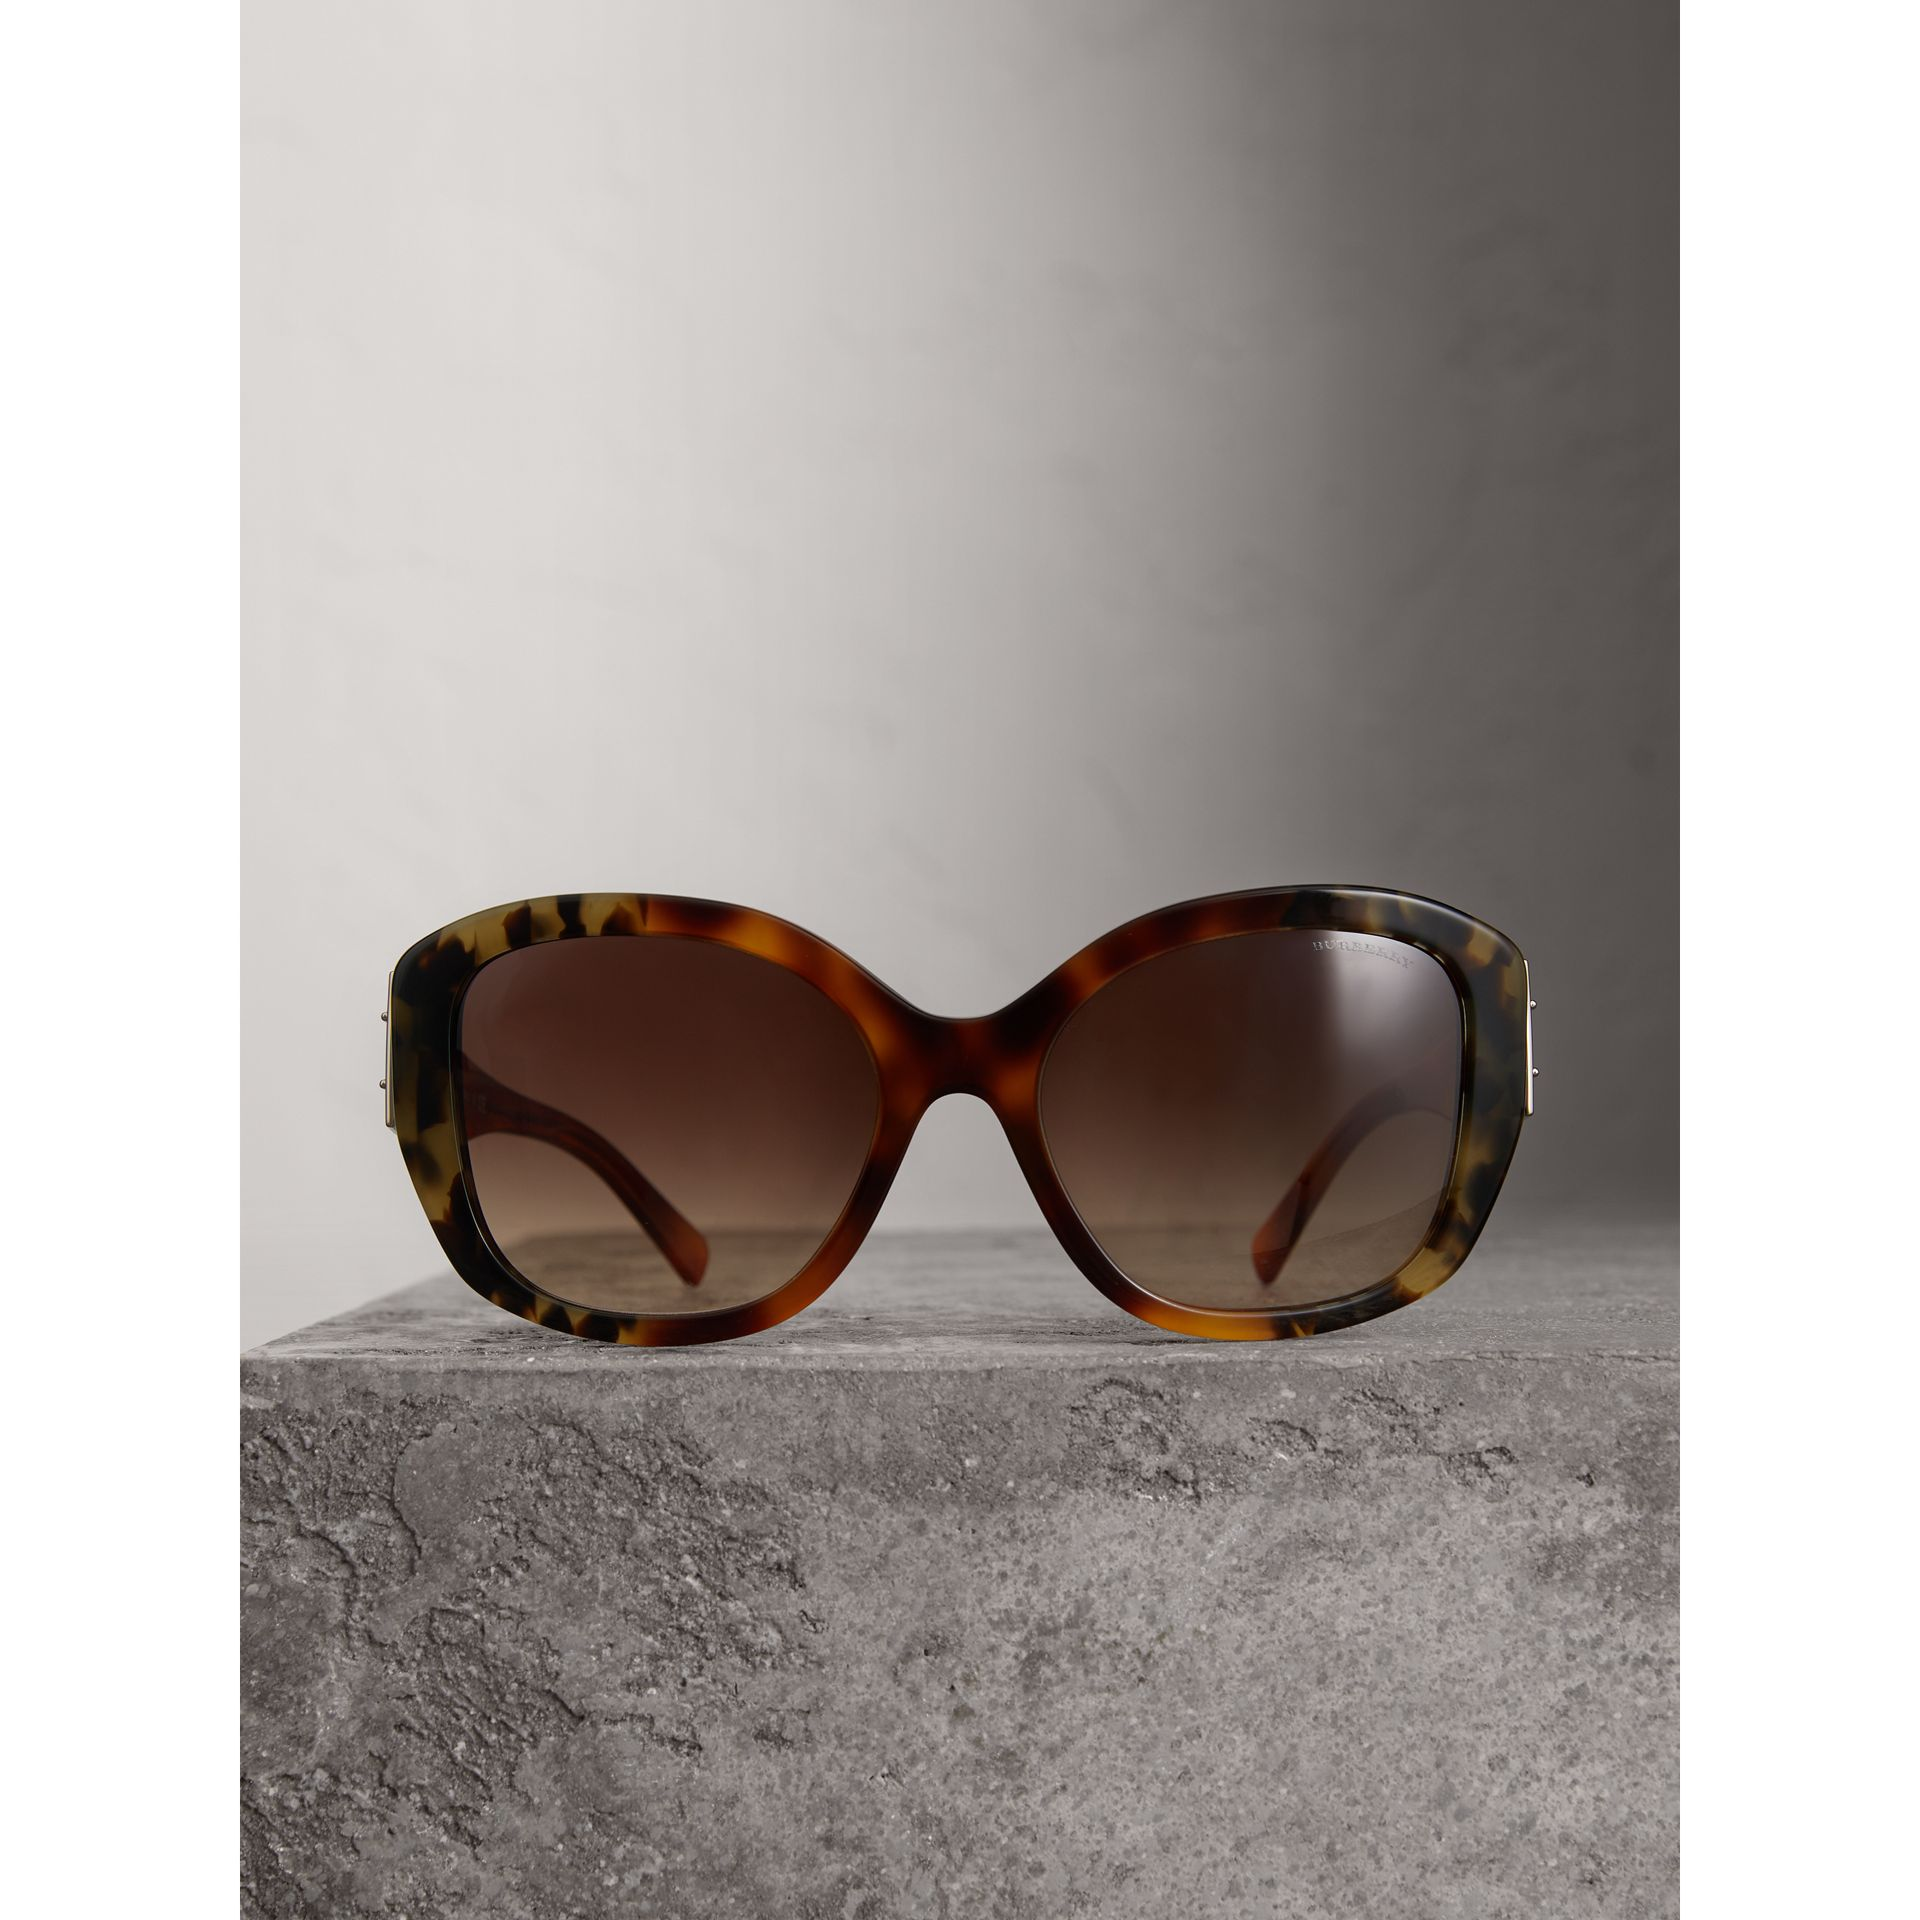 Buckle Detail Oversize Square Frame Sunglasses in Dark Ochre - Women | Burberry - gallery image 3